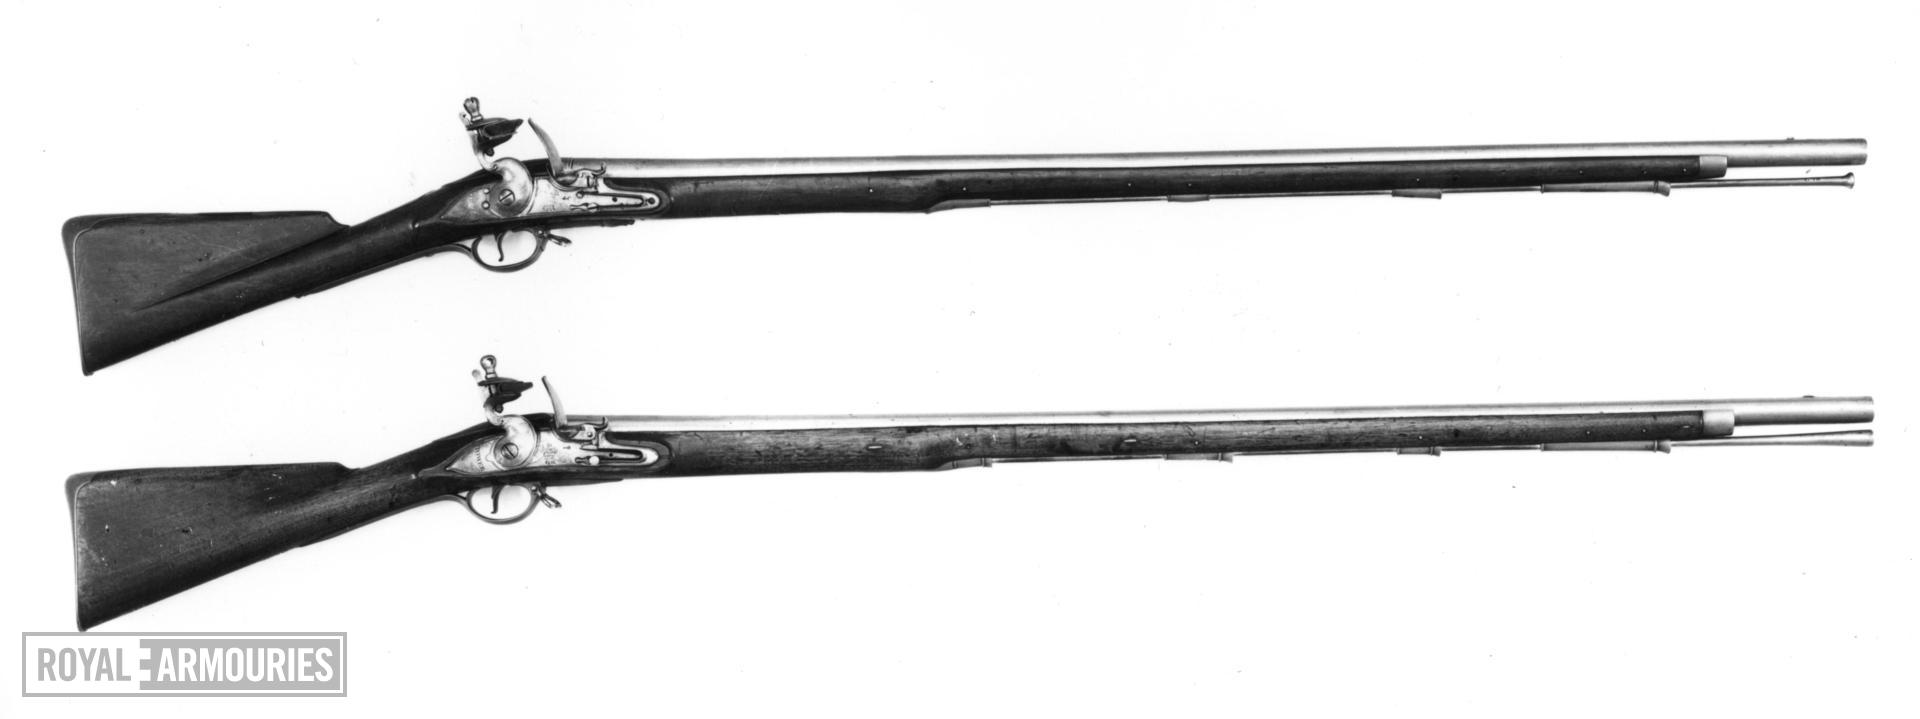 Flintlock muzzle-loading military musket - Pattern 1779 Short Land Wartime production.